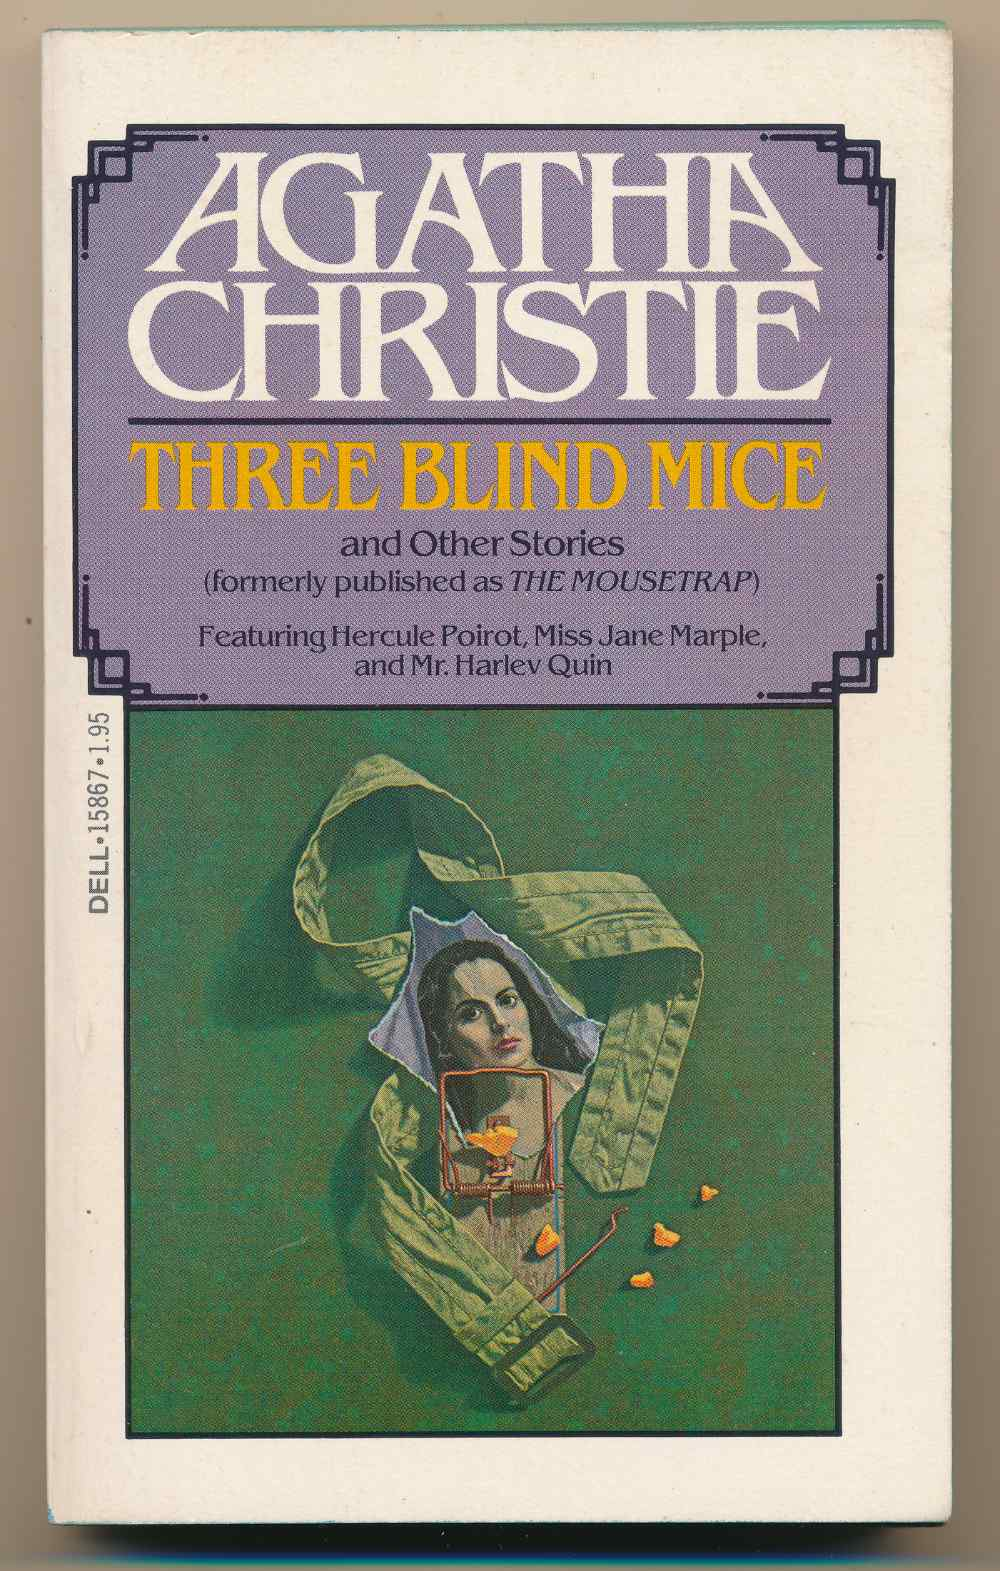 Three blind mice and other stories (formerly published as The Mousetrap)